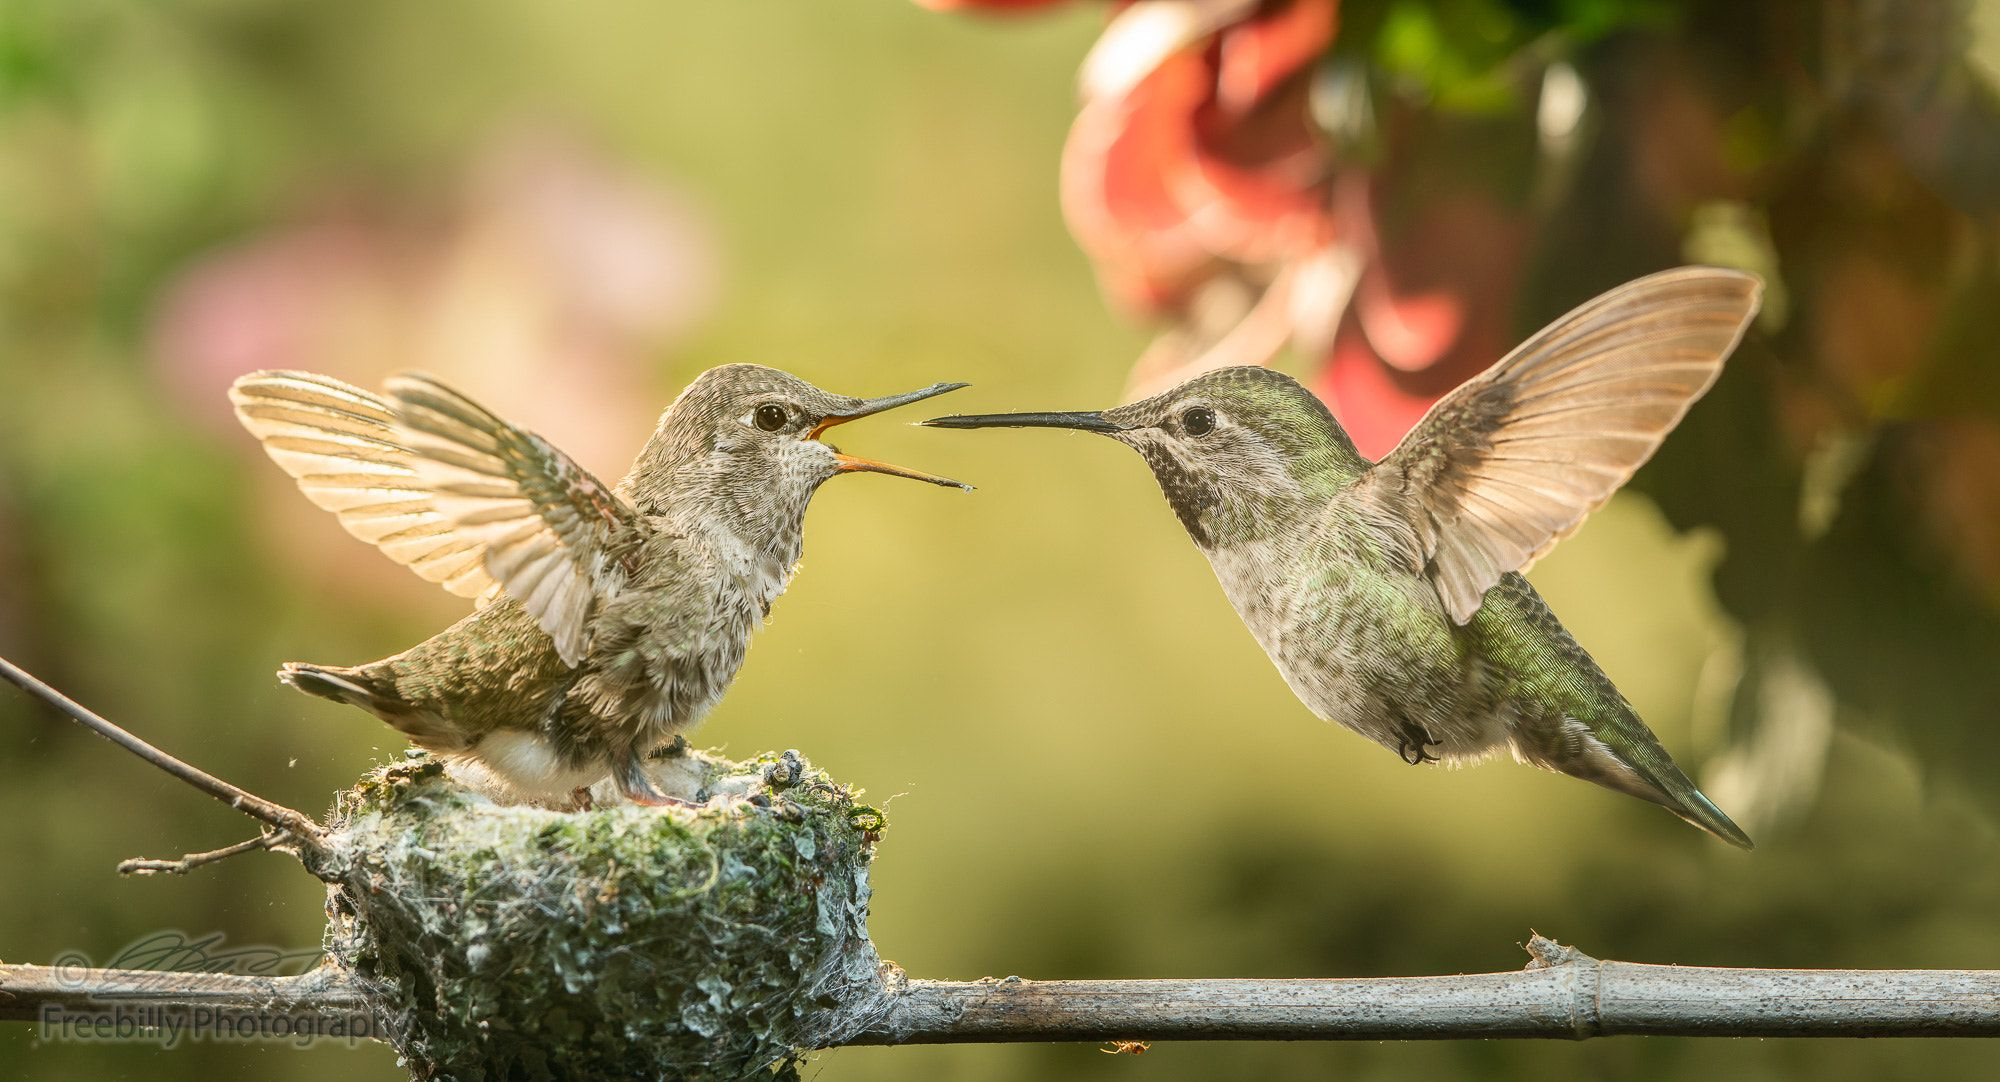 Baby Hummingbird Open Mouth For Food From Mother This Is A Photograph Of A Baby Hummingbird Opening Mouth For Food Baby Hummingbirds Hummingbird Baby Feeding